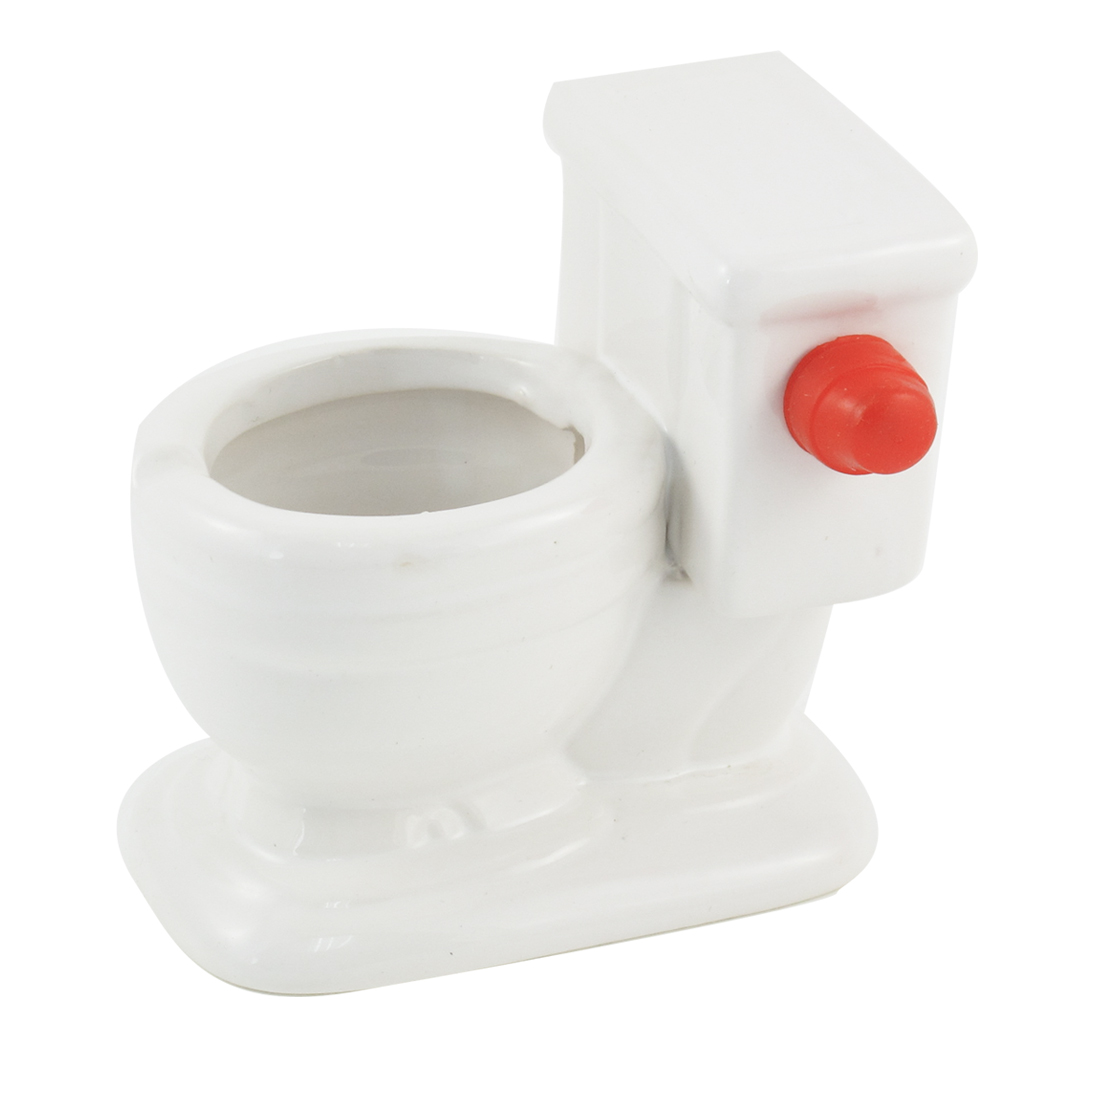 Bedroom Closestool Design White Ceramic Cigarette Ashtray